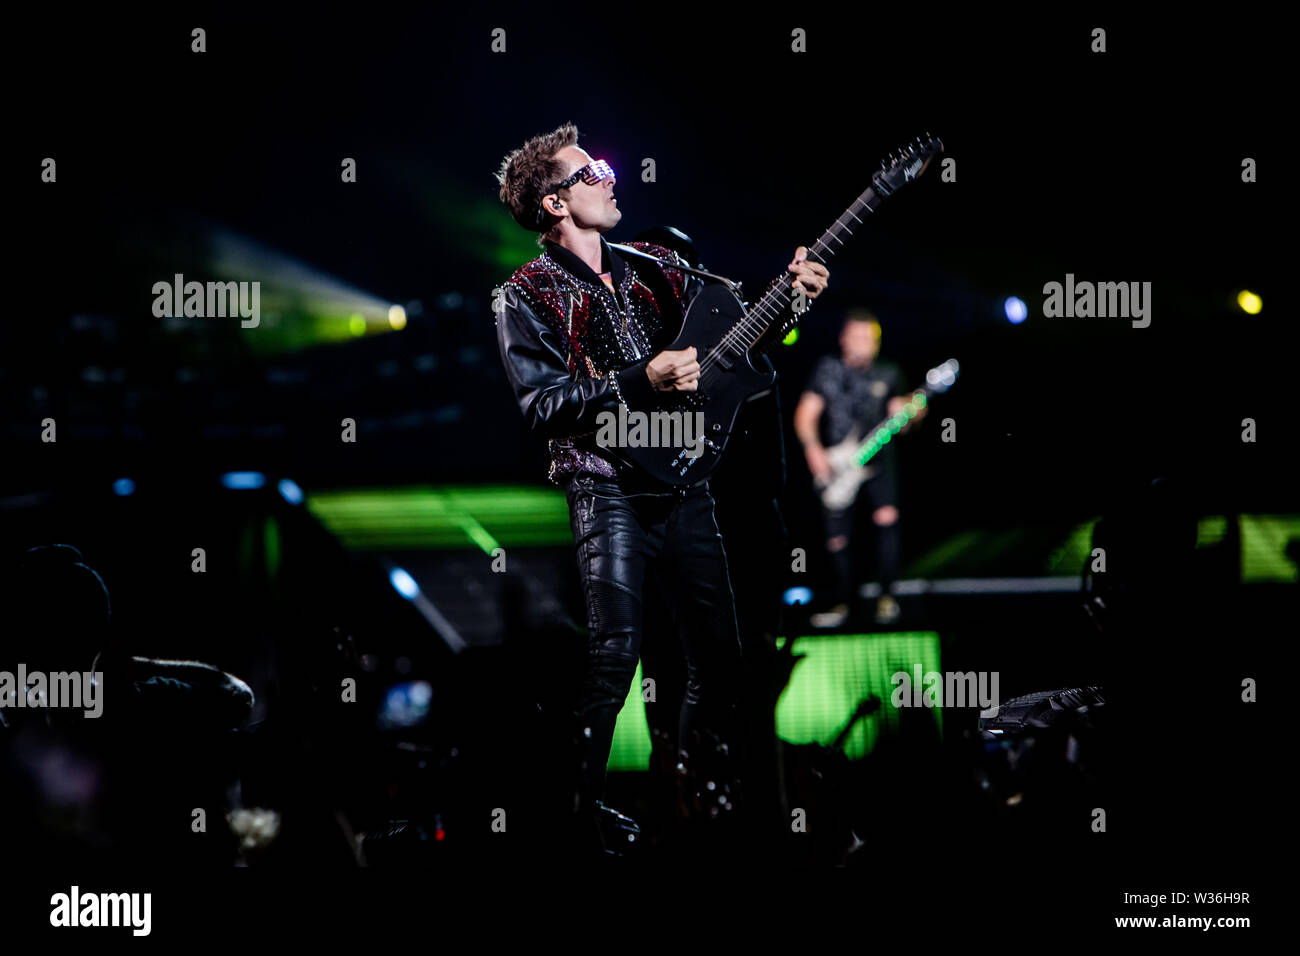 Muse performs live at Stadio San Siro in Milano, Italy, on July 12 2019 Stock Photo